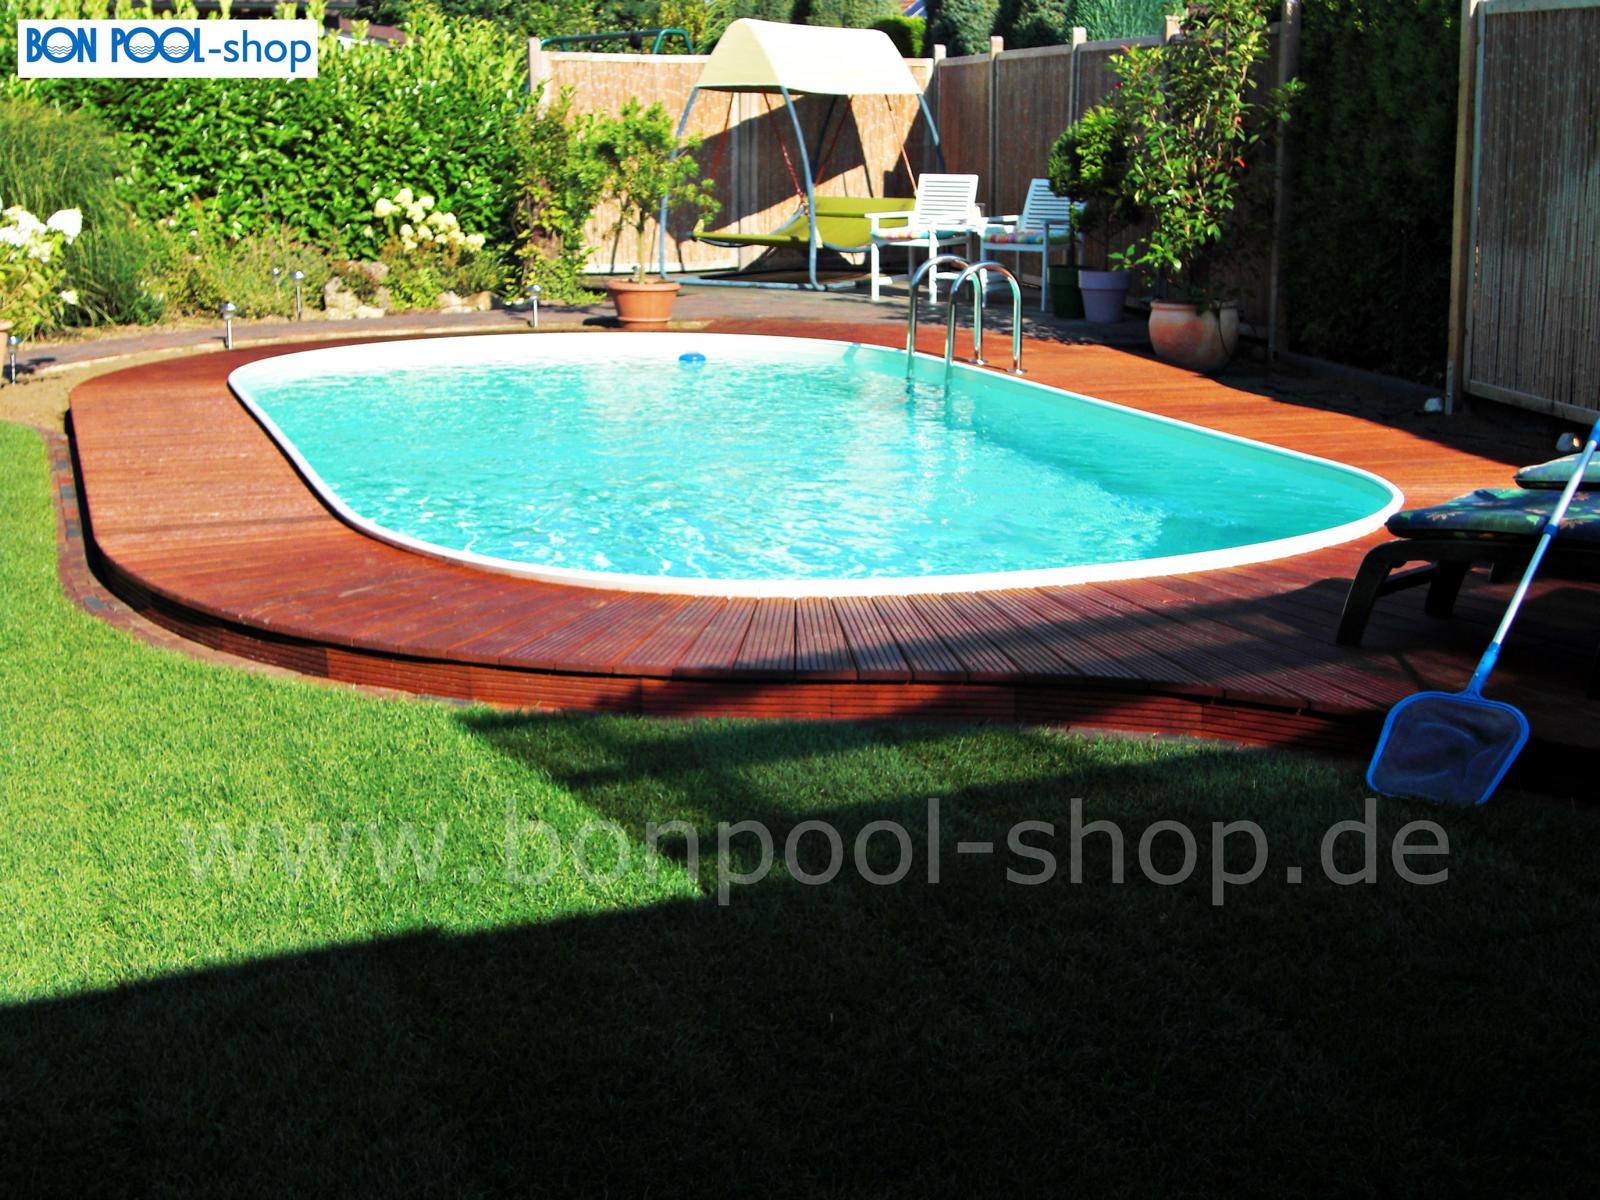 Pool Garten Tiefe Ovalbecken Set 737 X 360 Tiefe 150 Bon Pool